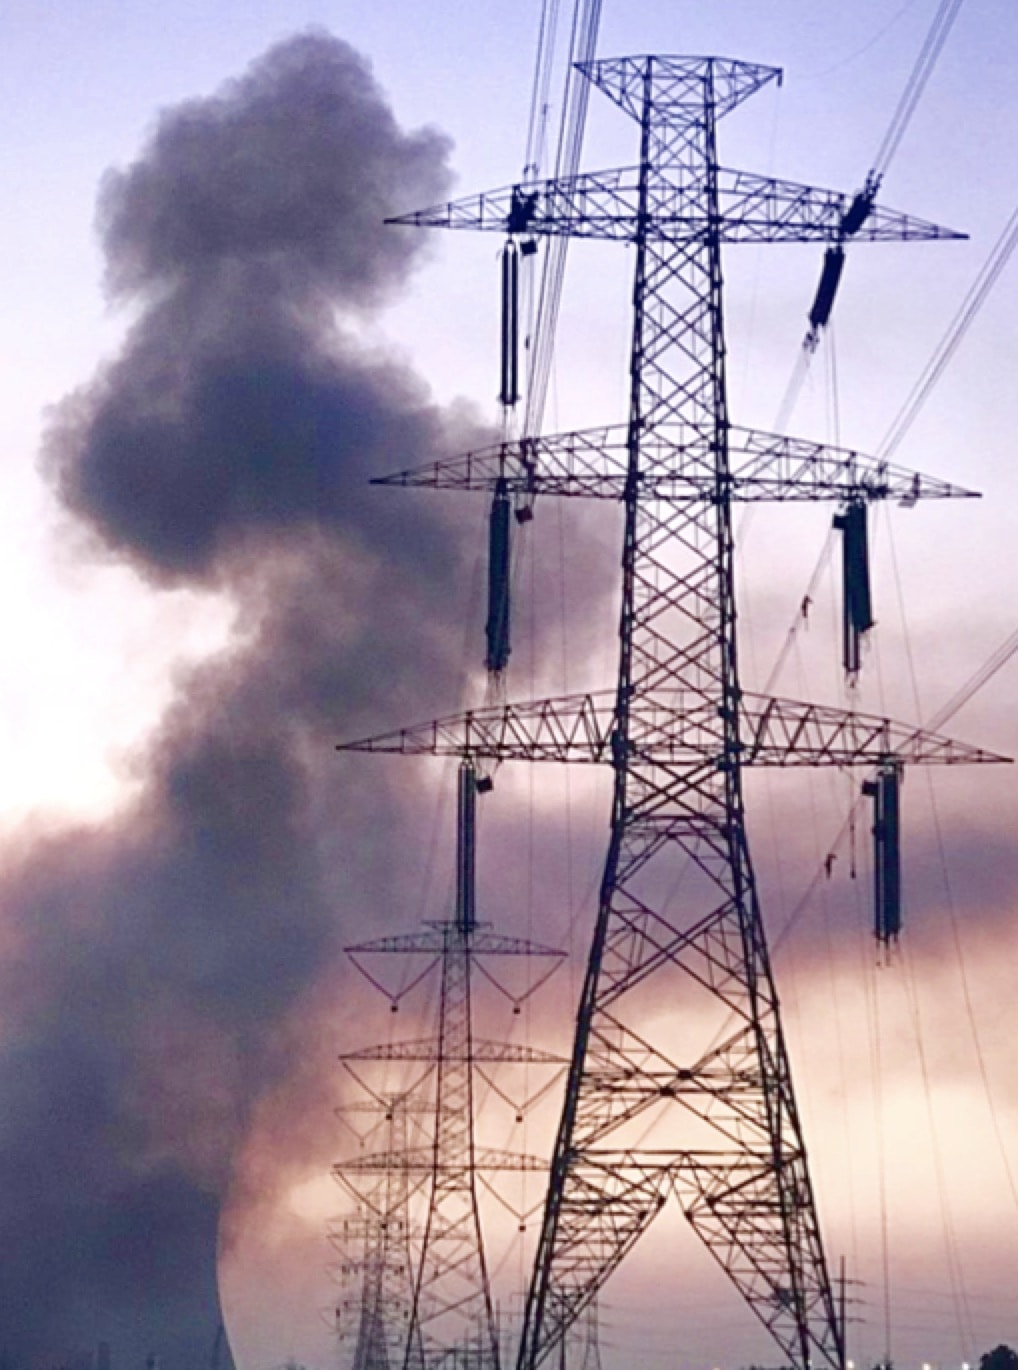 Transmission Grid in Pakistan Confronts Dual Challenges of Pollution & Icing (Part 1 of 2) Transmission Grid